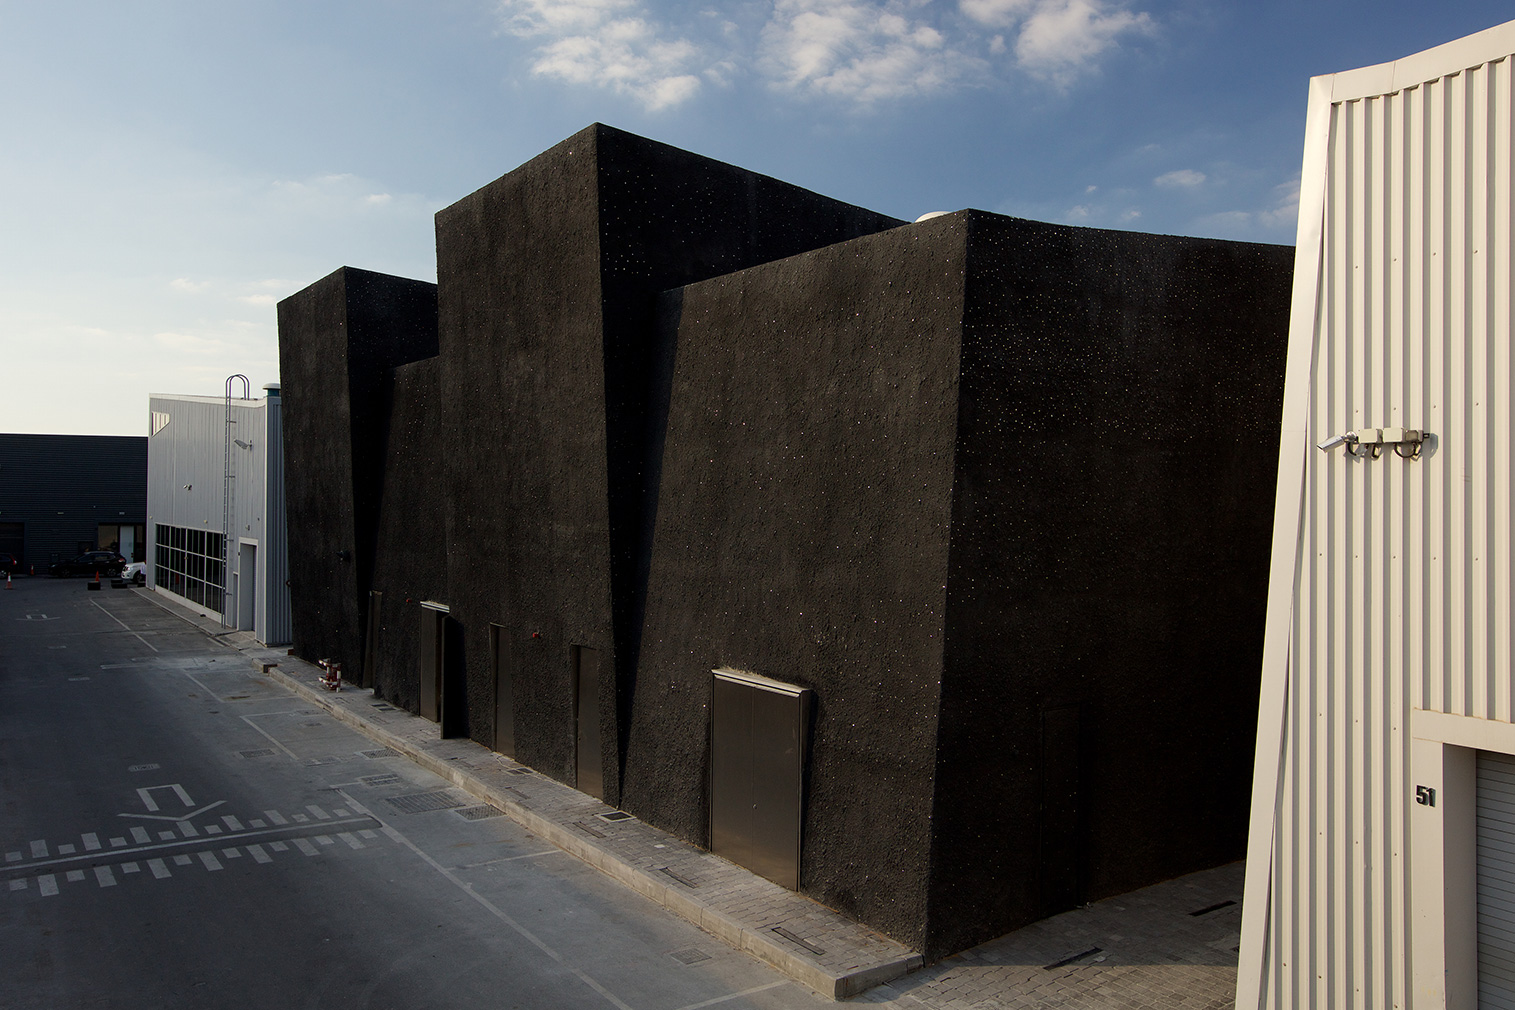 Concrete cultural space by OMA on Dubai's Alserkal Avenue